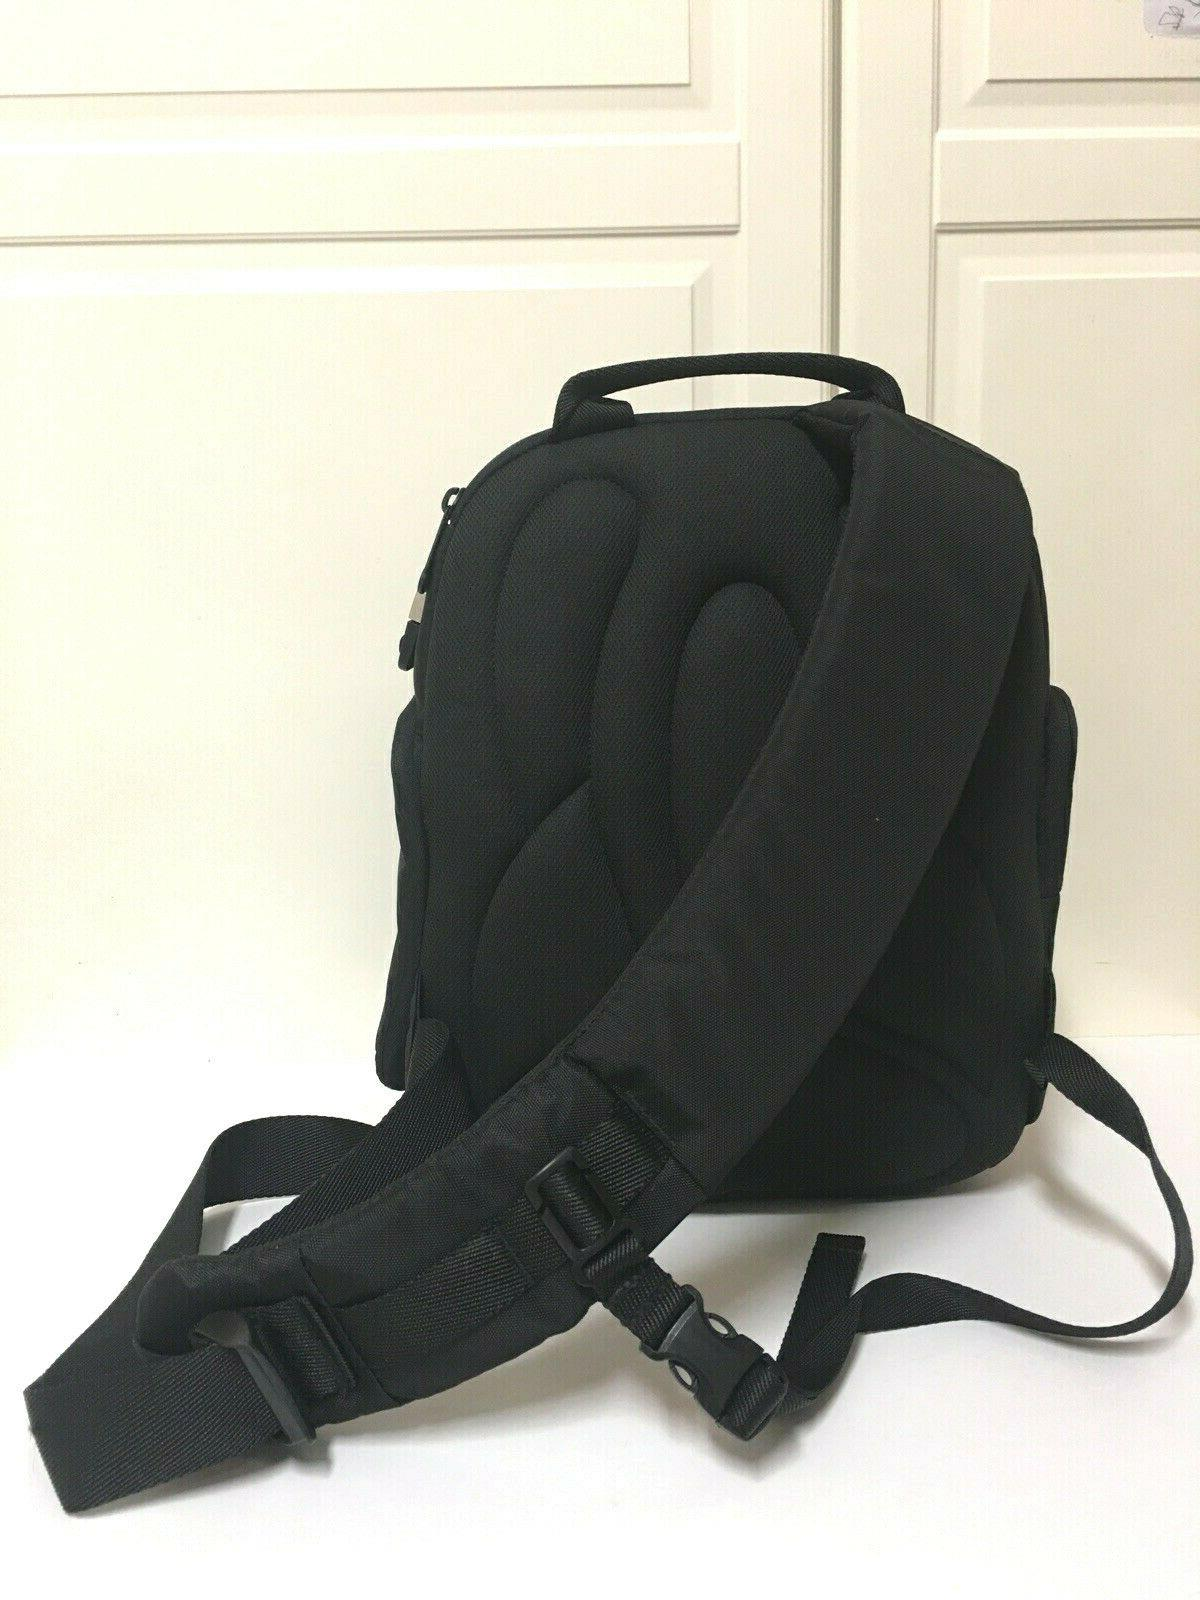 Manfrotto Stile MB Carrying Tripod Water Resistant, Moisture - Strap, Backpack 14.2 Width 7.5 Depth